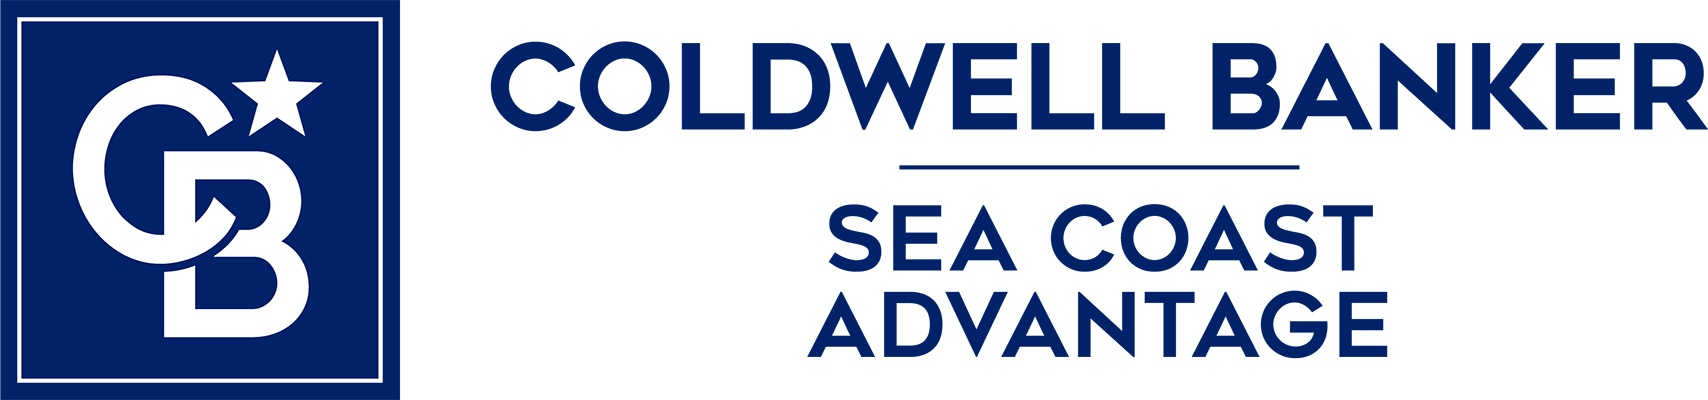 Jason Gruner - Coldwell Banker Sea Coast Advantage Realty Logo